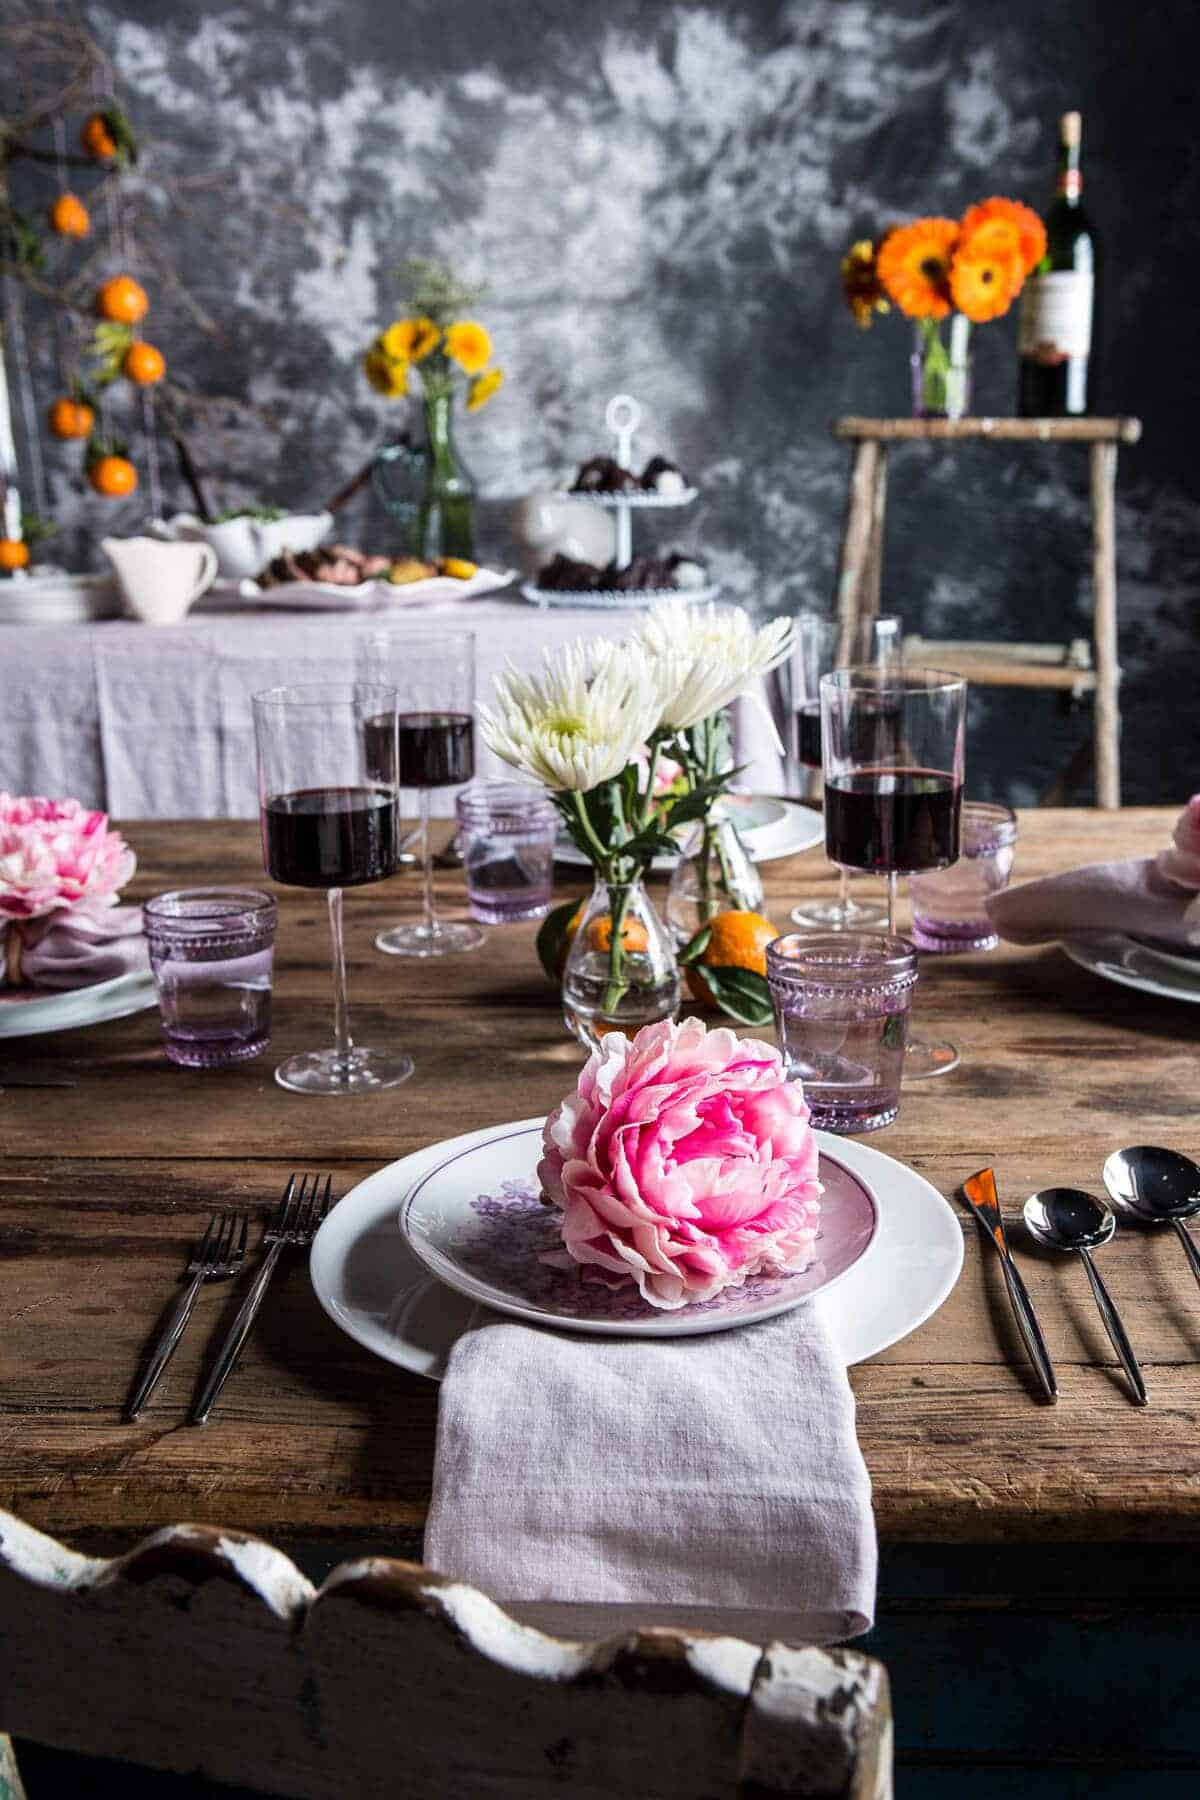 A Simple Easter Dinner | halfbakedharvest.com @hbharvest